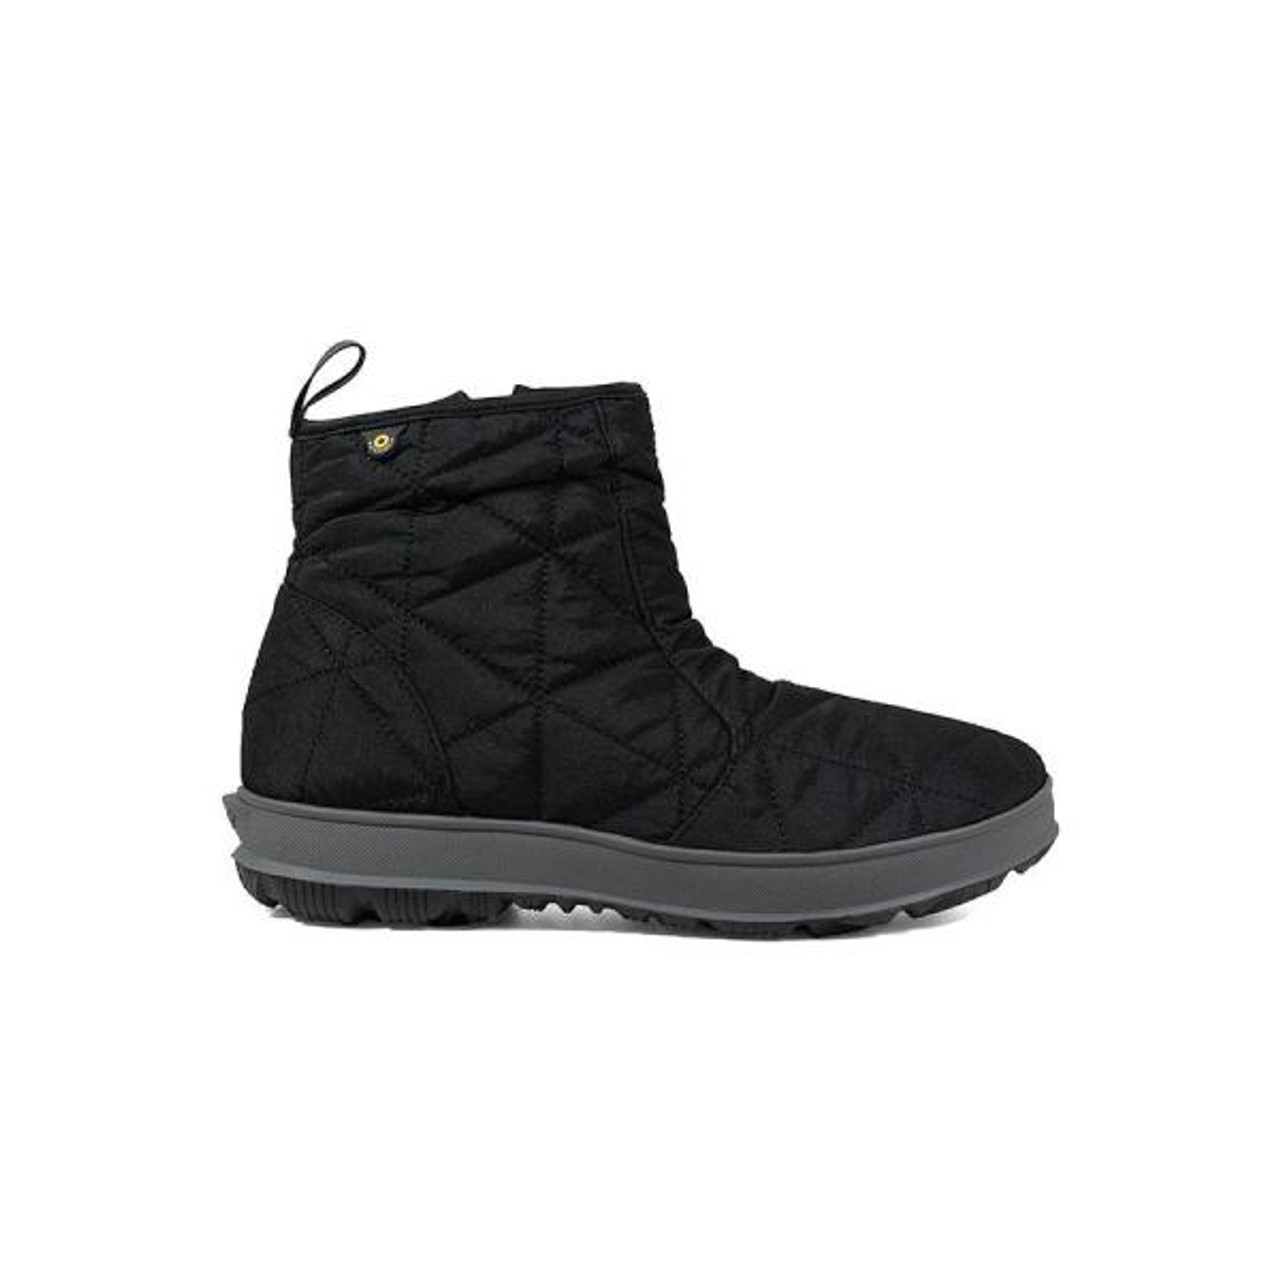 5f20256985b BOGS Snowday Low Women's Insulated Waterproof Winter Boots in Black ...